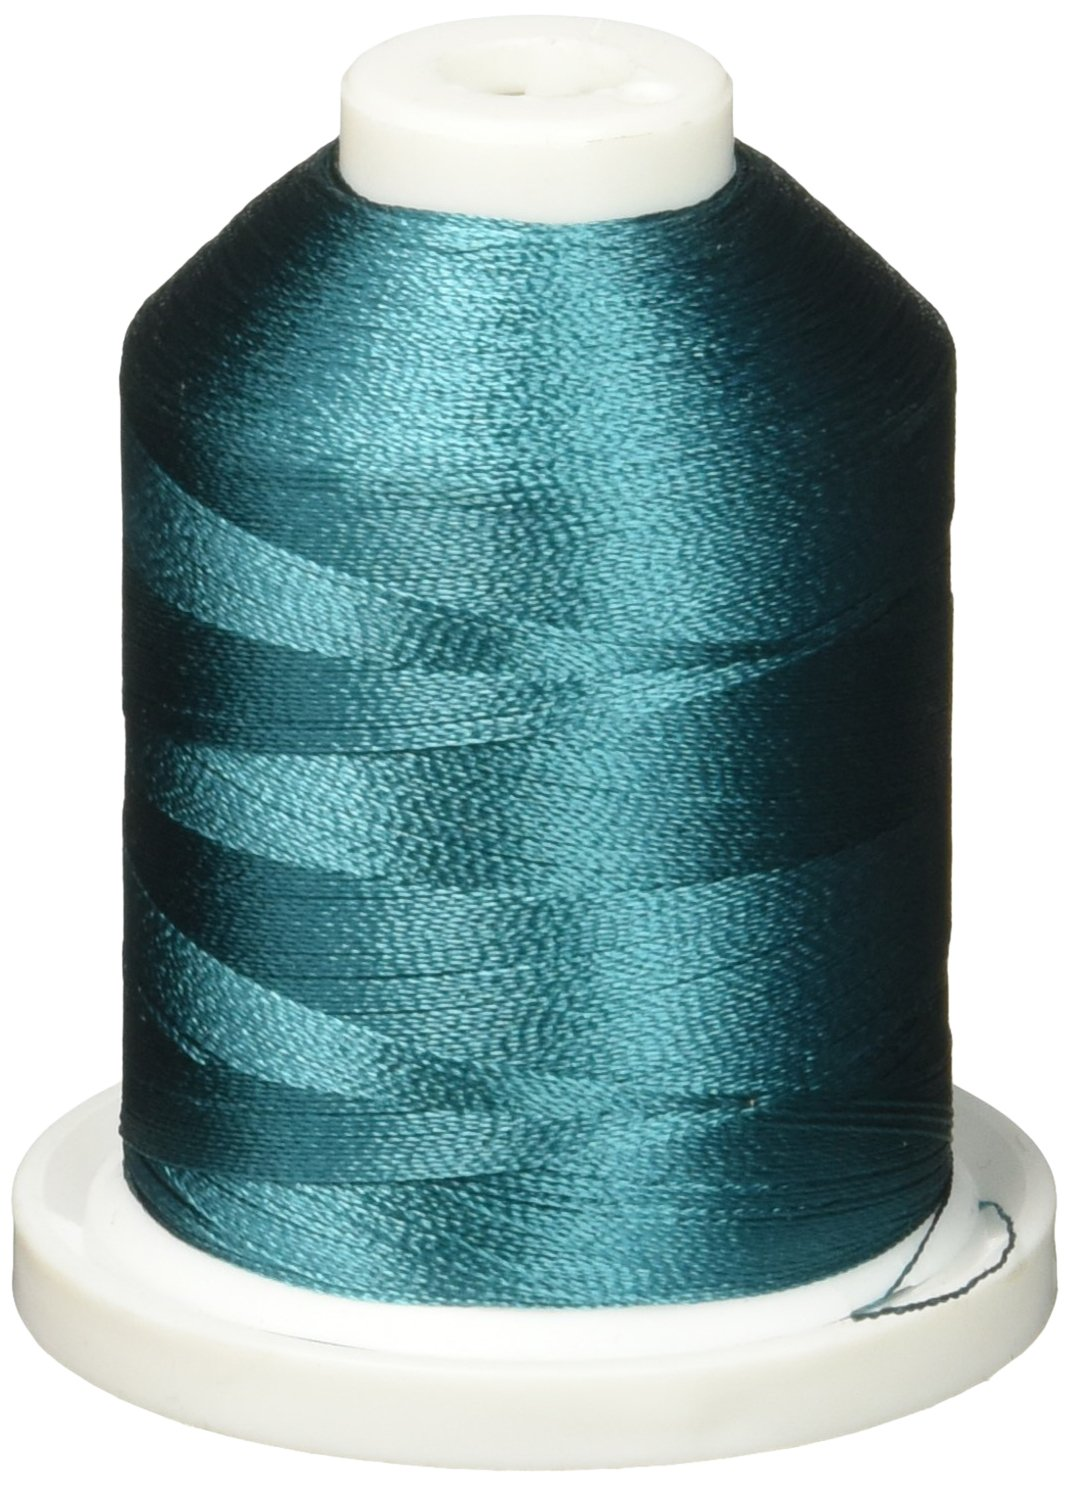 Robison-Anton Rayon Super Strength Thread, 1100-Yard, Pro-Teal